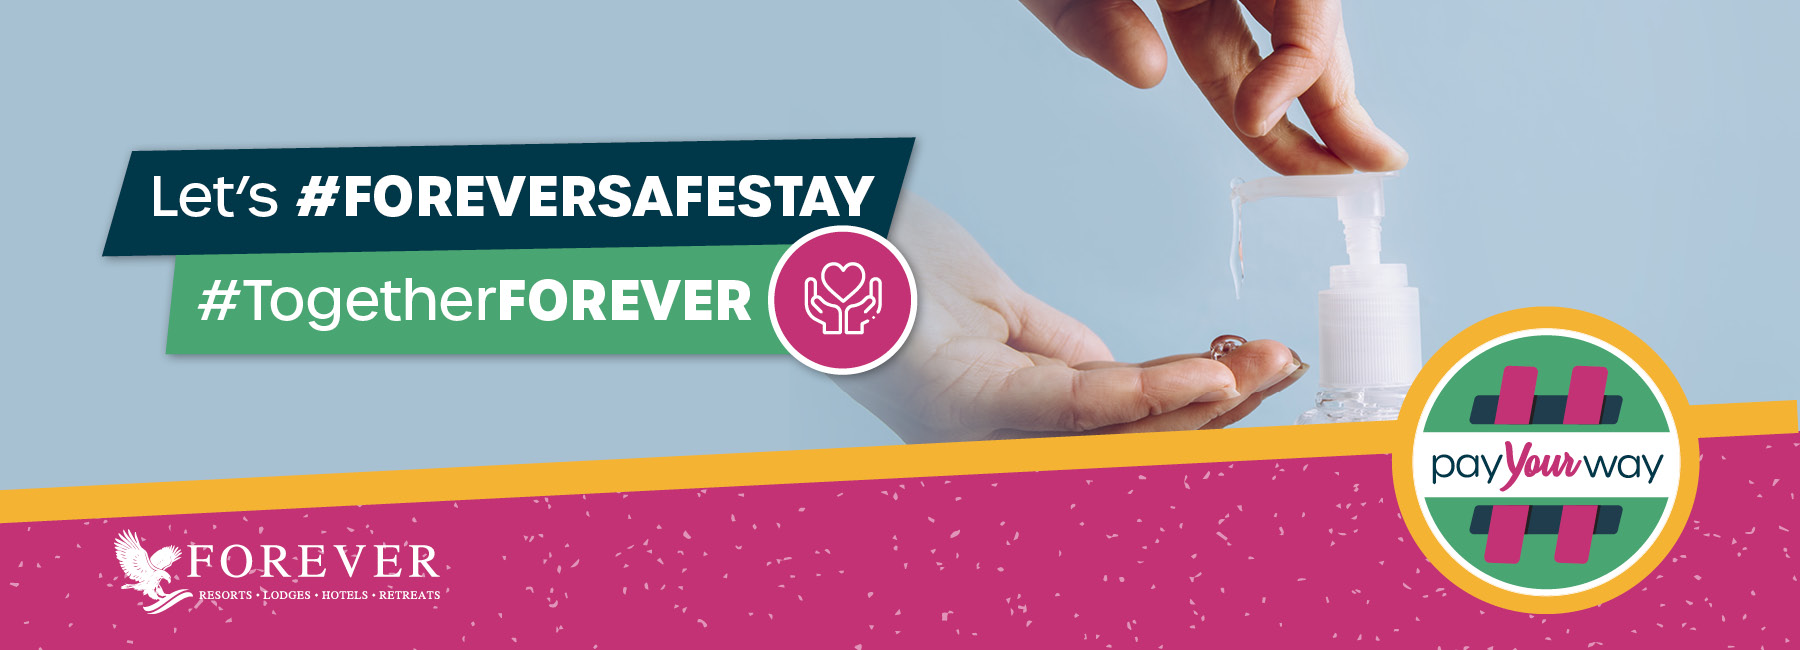 #ForeverSafeStay: Enhancing your experience by redefining cleanliness and supporting wellbeing throughout your stay with us.